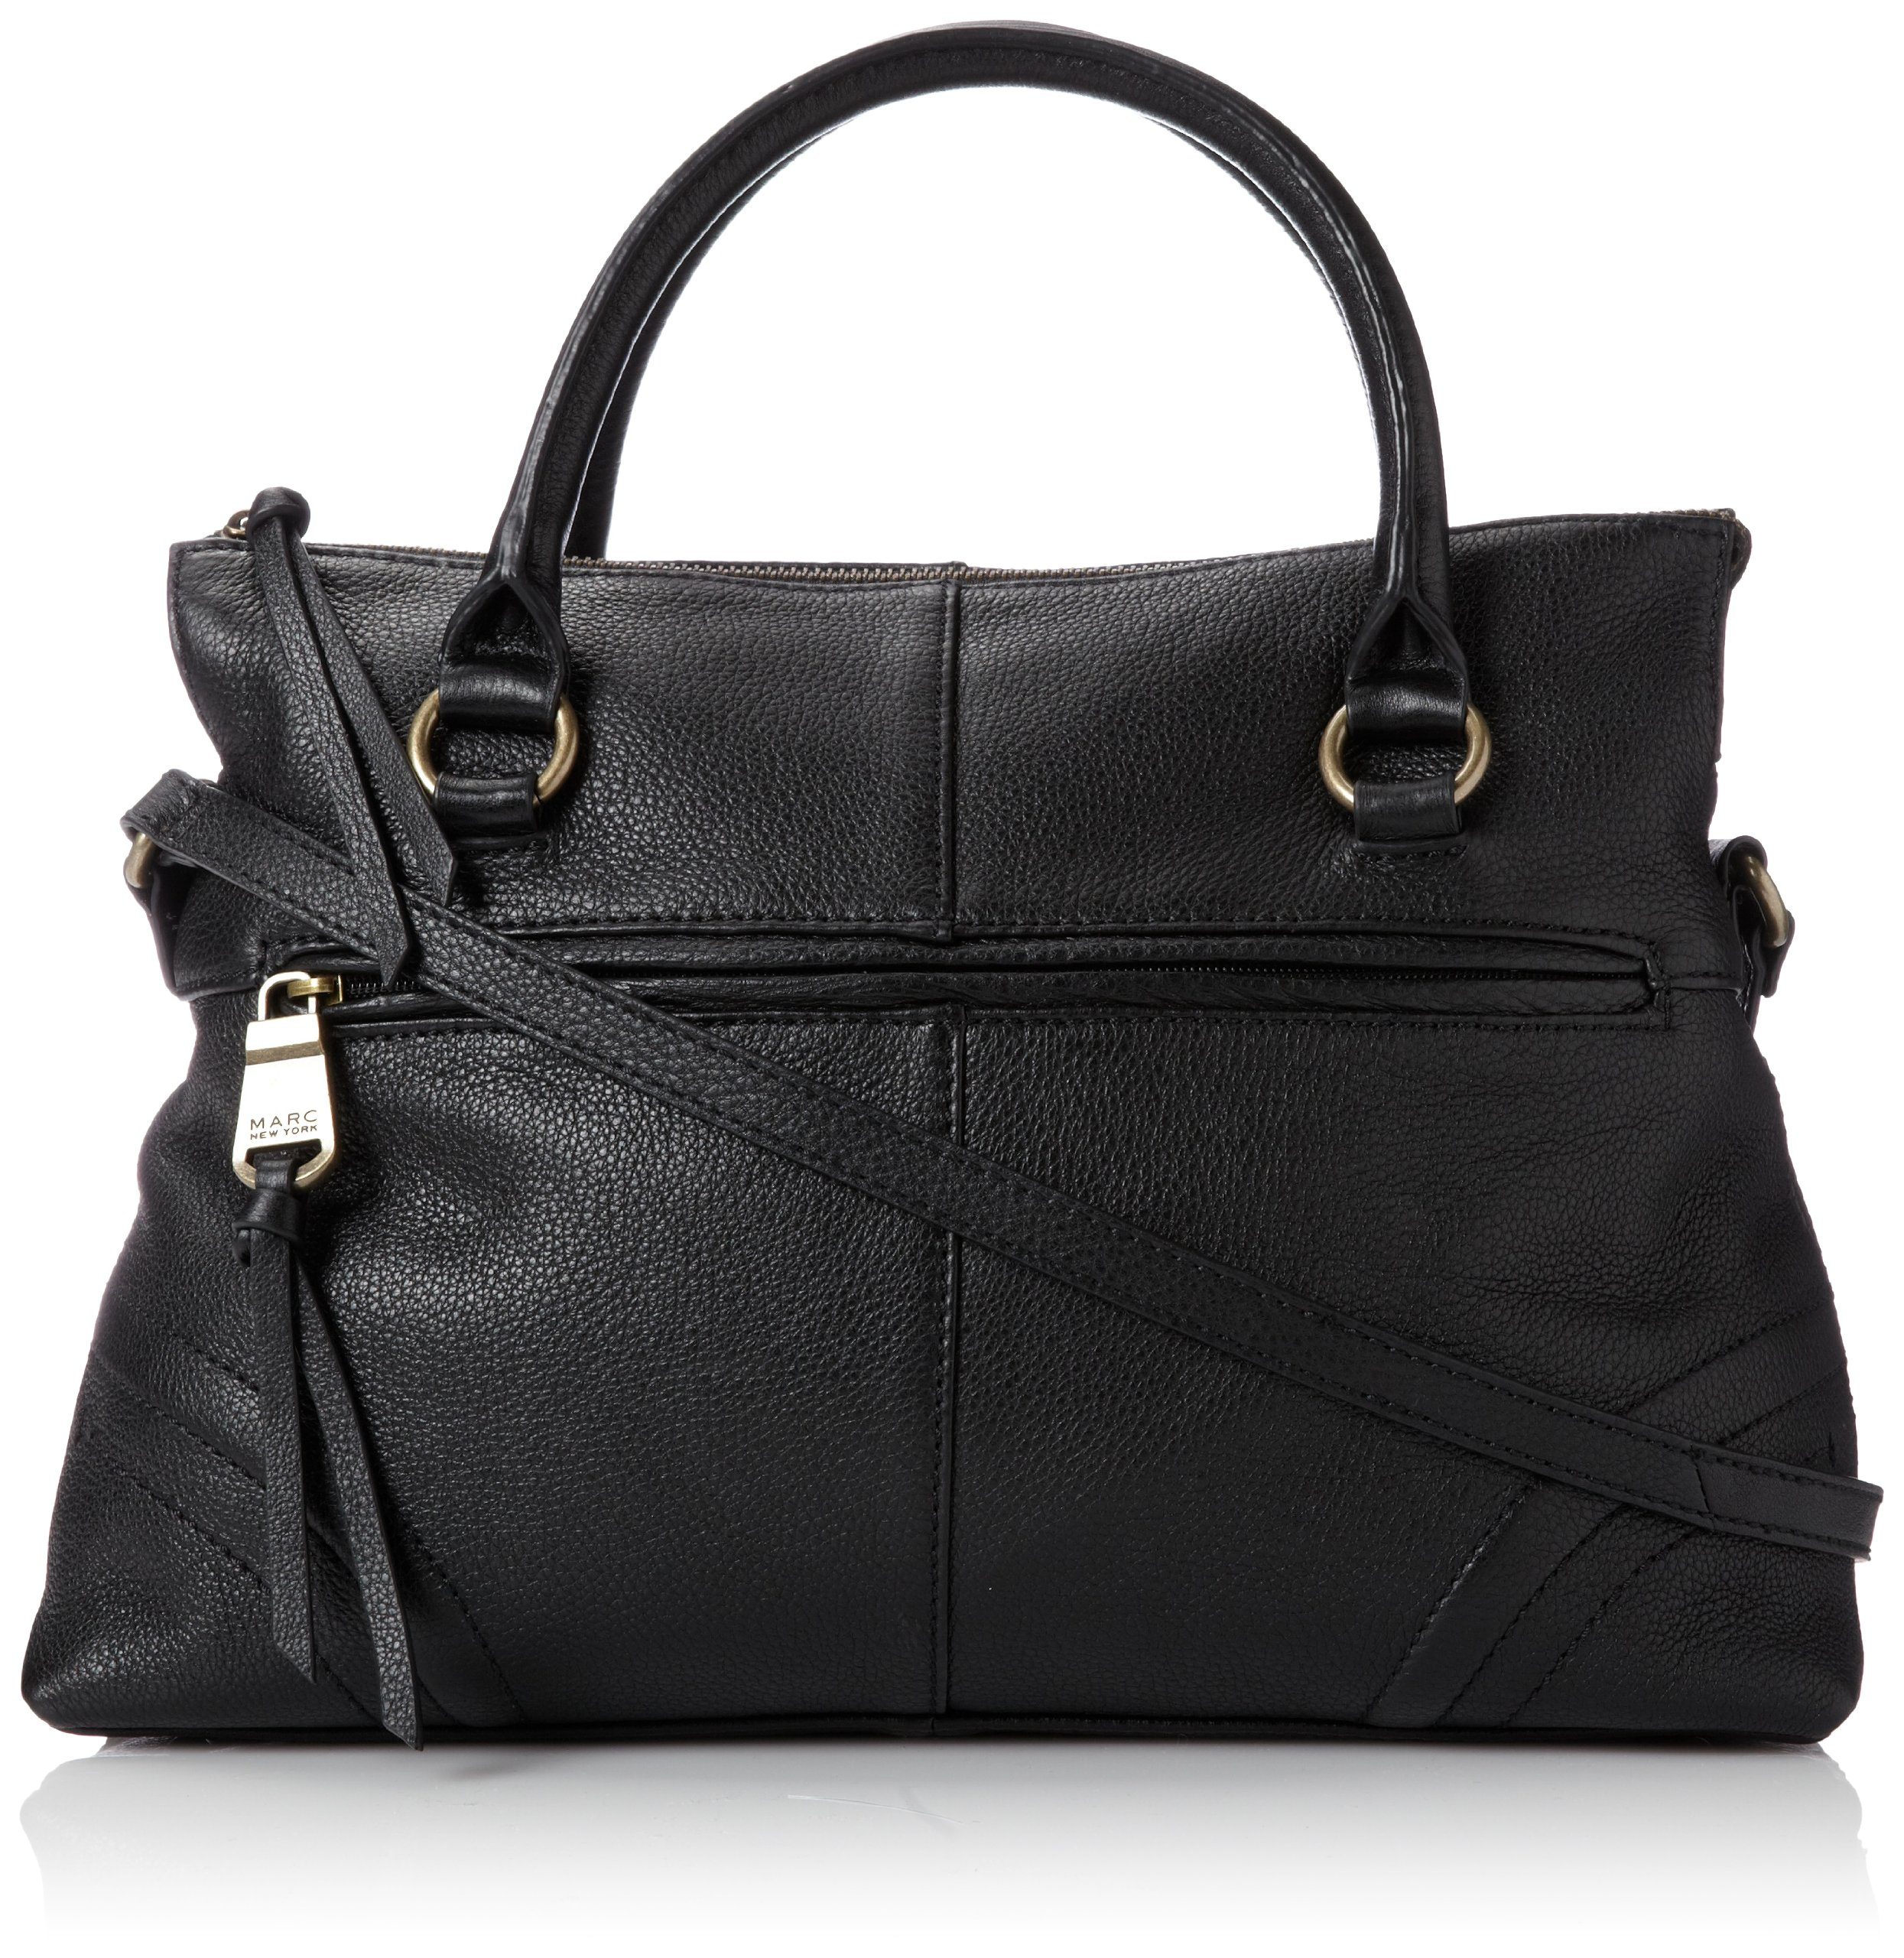 Marc New York Tristen HM3DA288 Top Handle Bag,Black,One Size